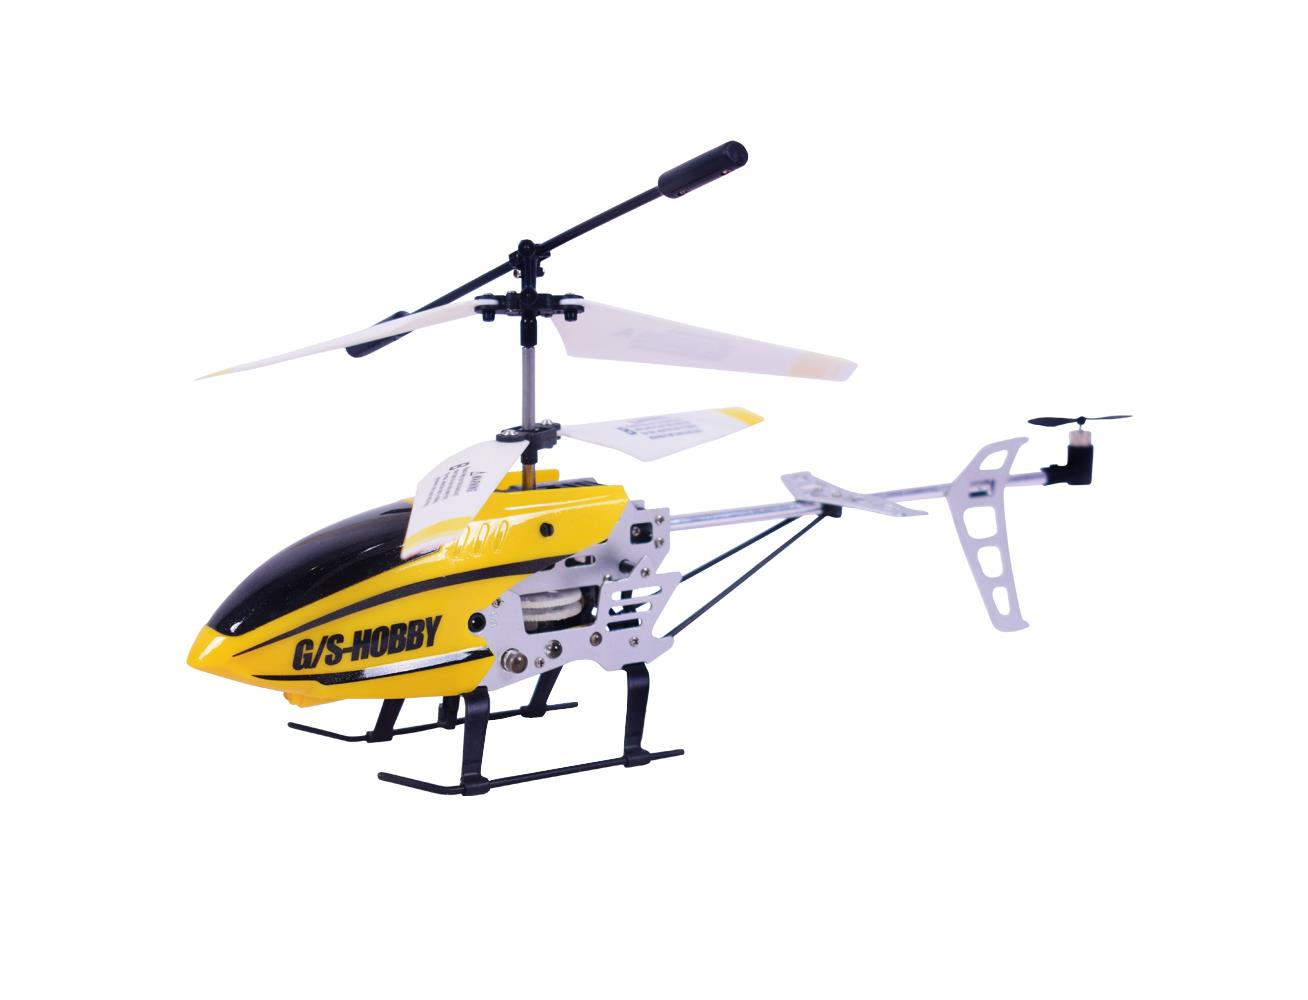 Shantou RC Helicopter with Gyro, USB Charger & Spare Tail Blade